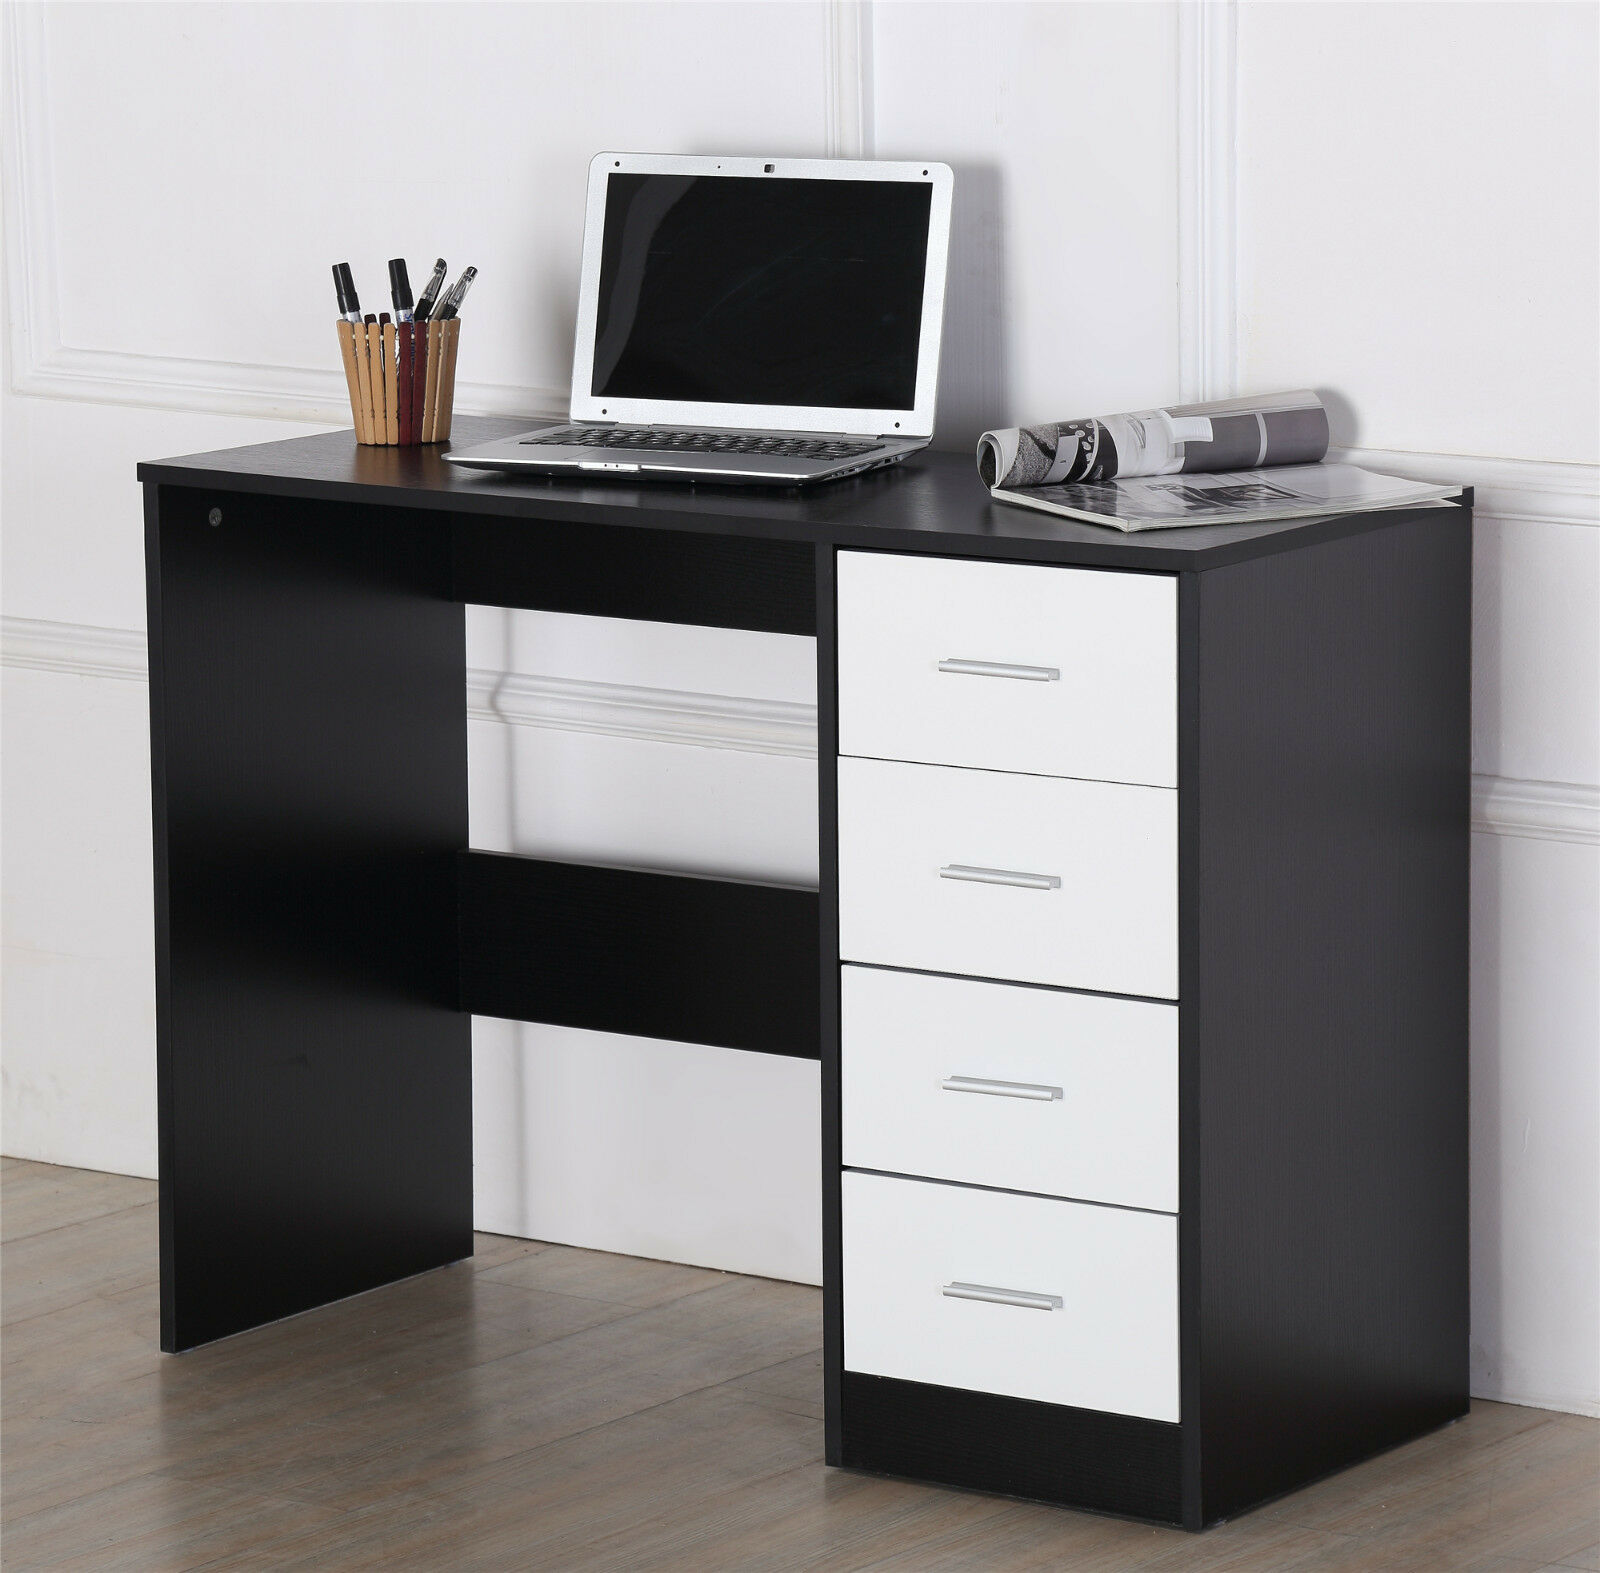 ossotto high gloss 4 drawer dressing table vanity computer study